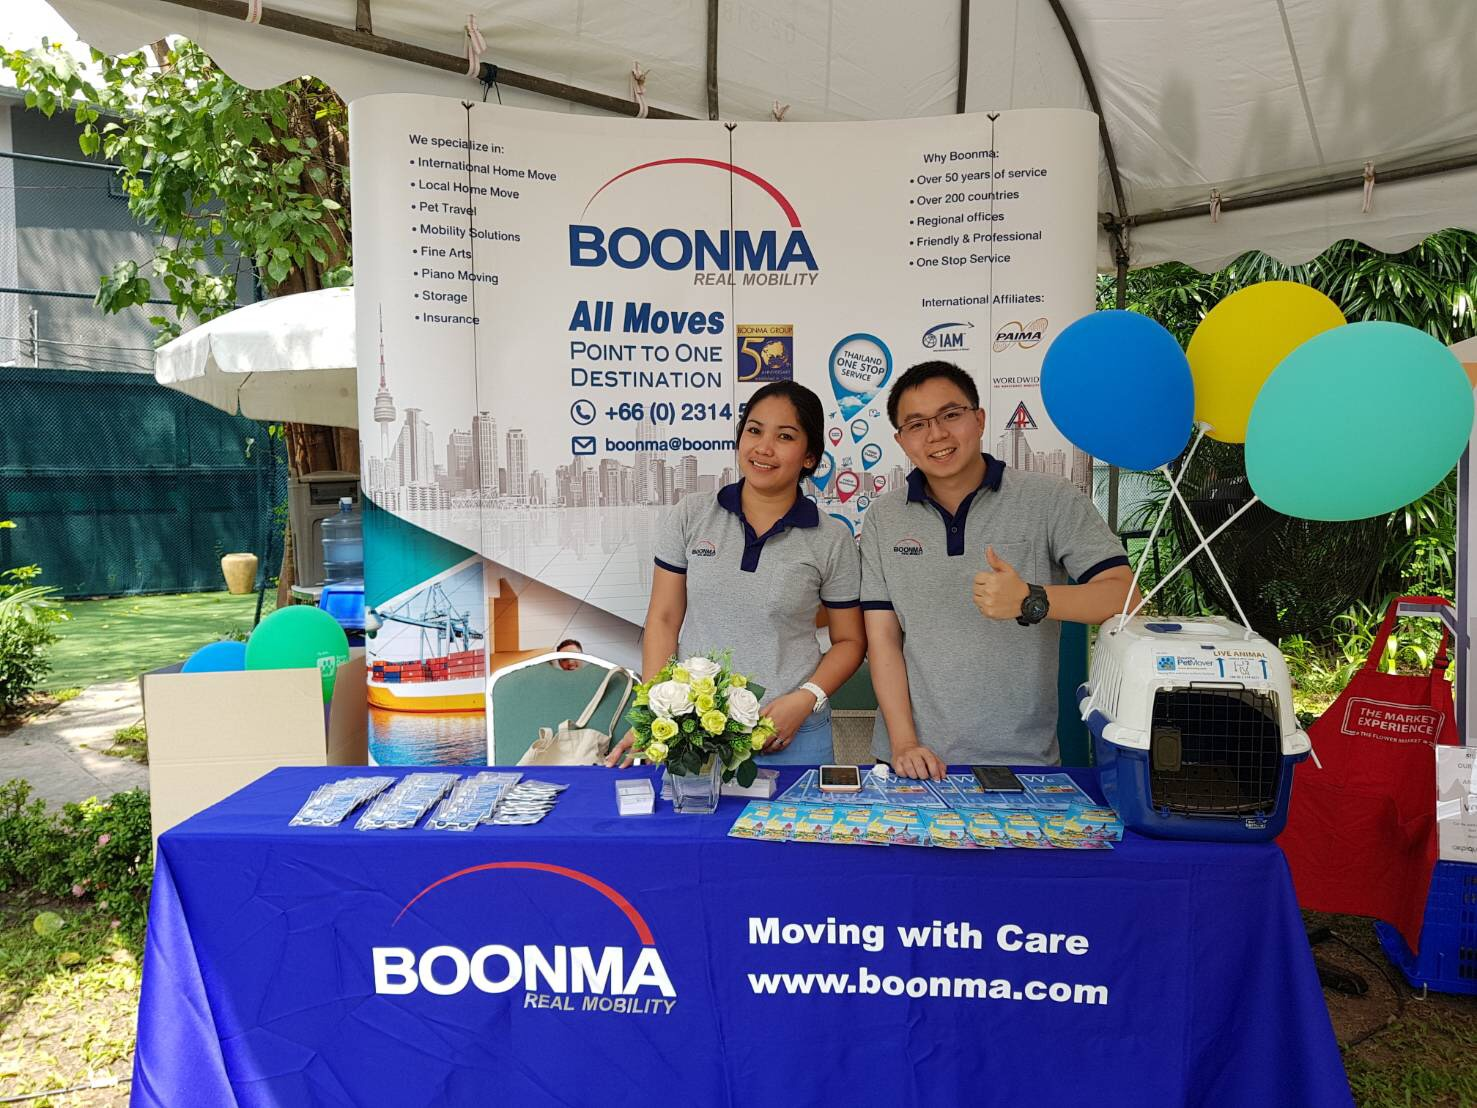 Boonma exhibition stand